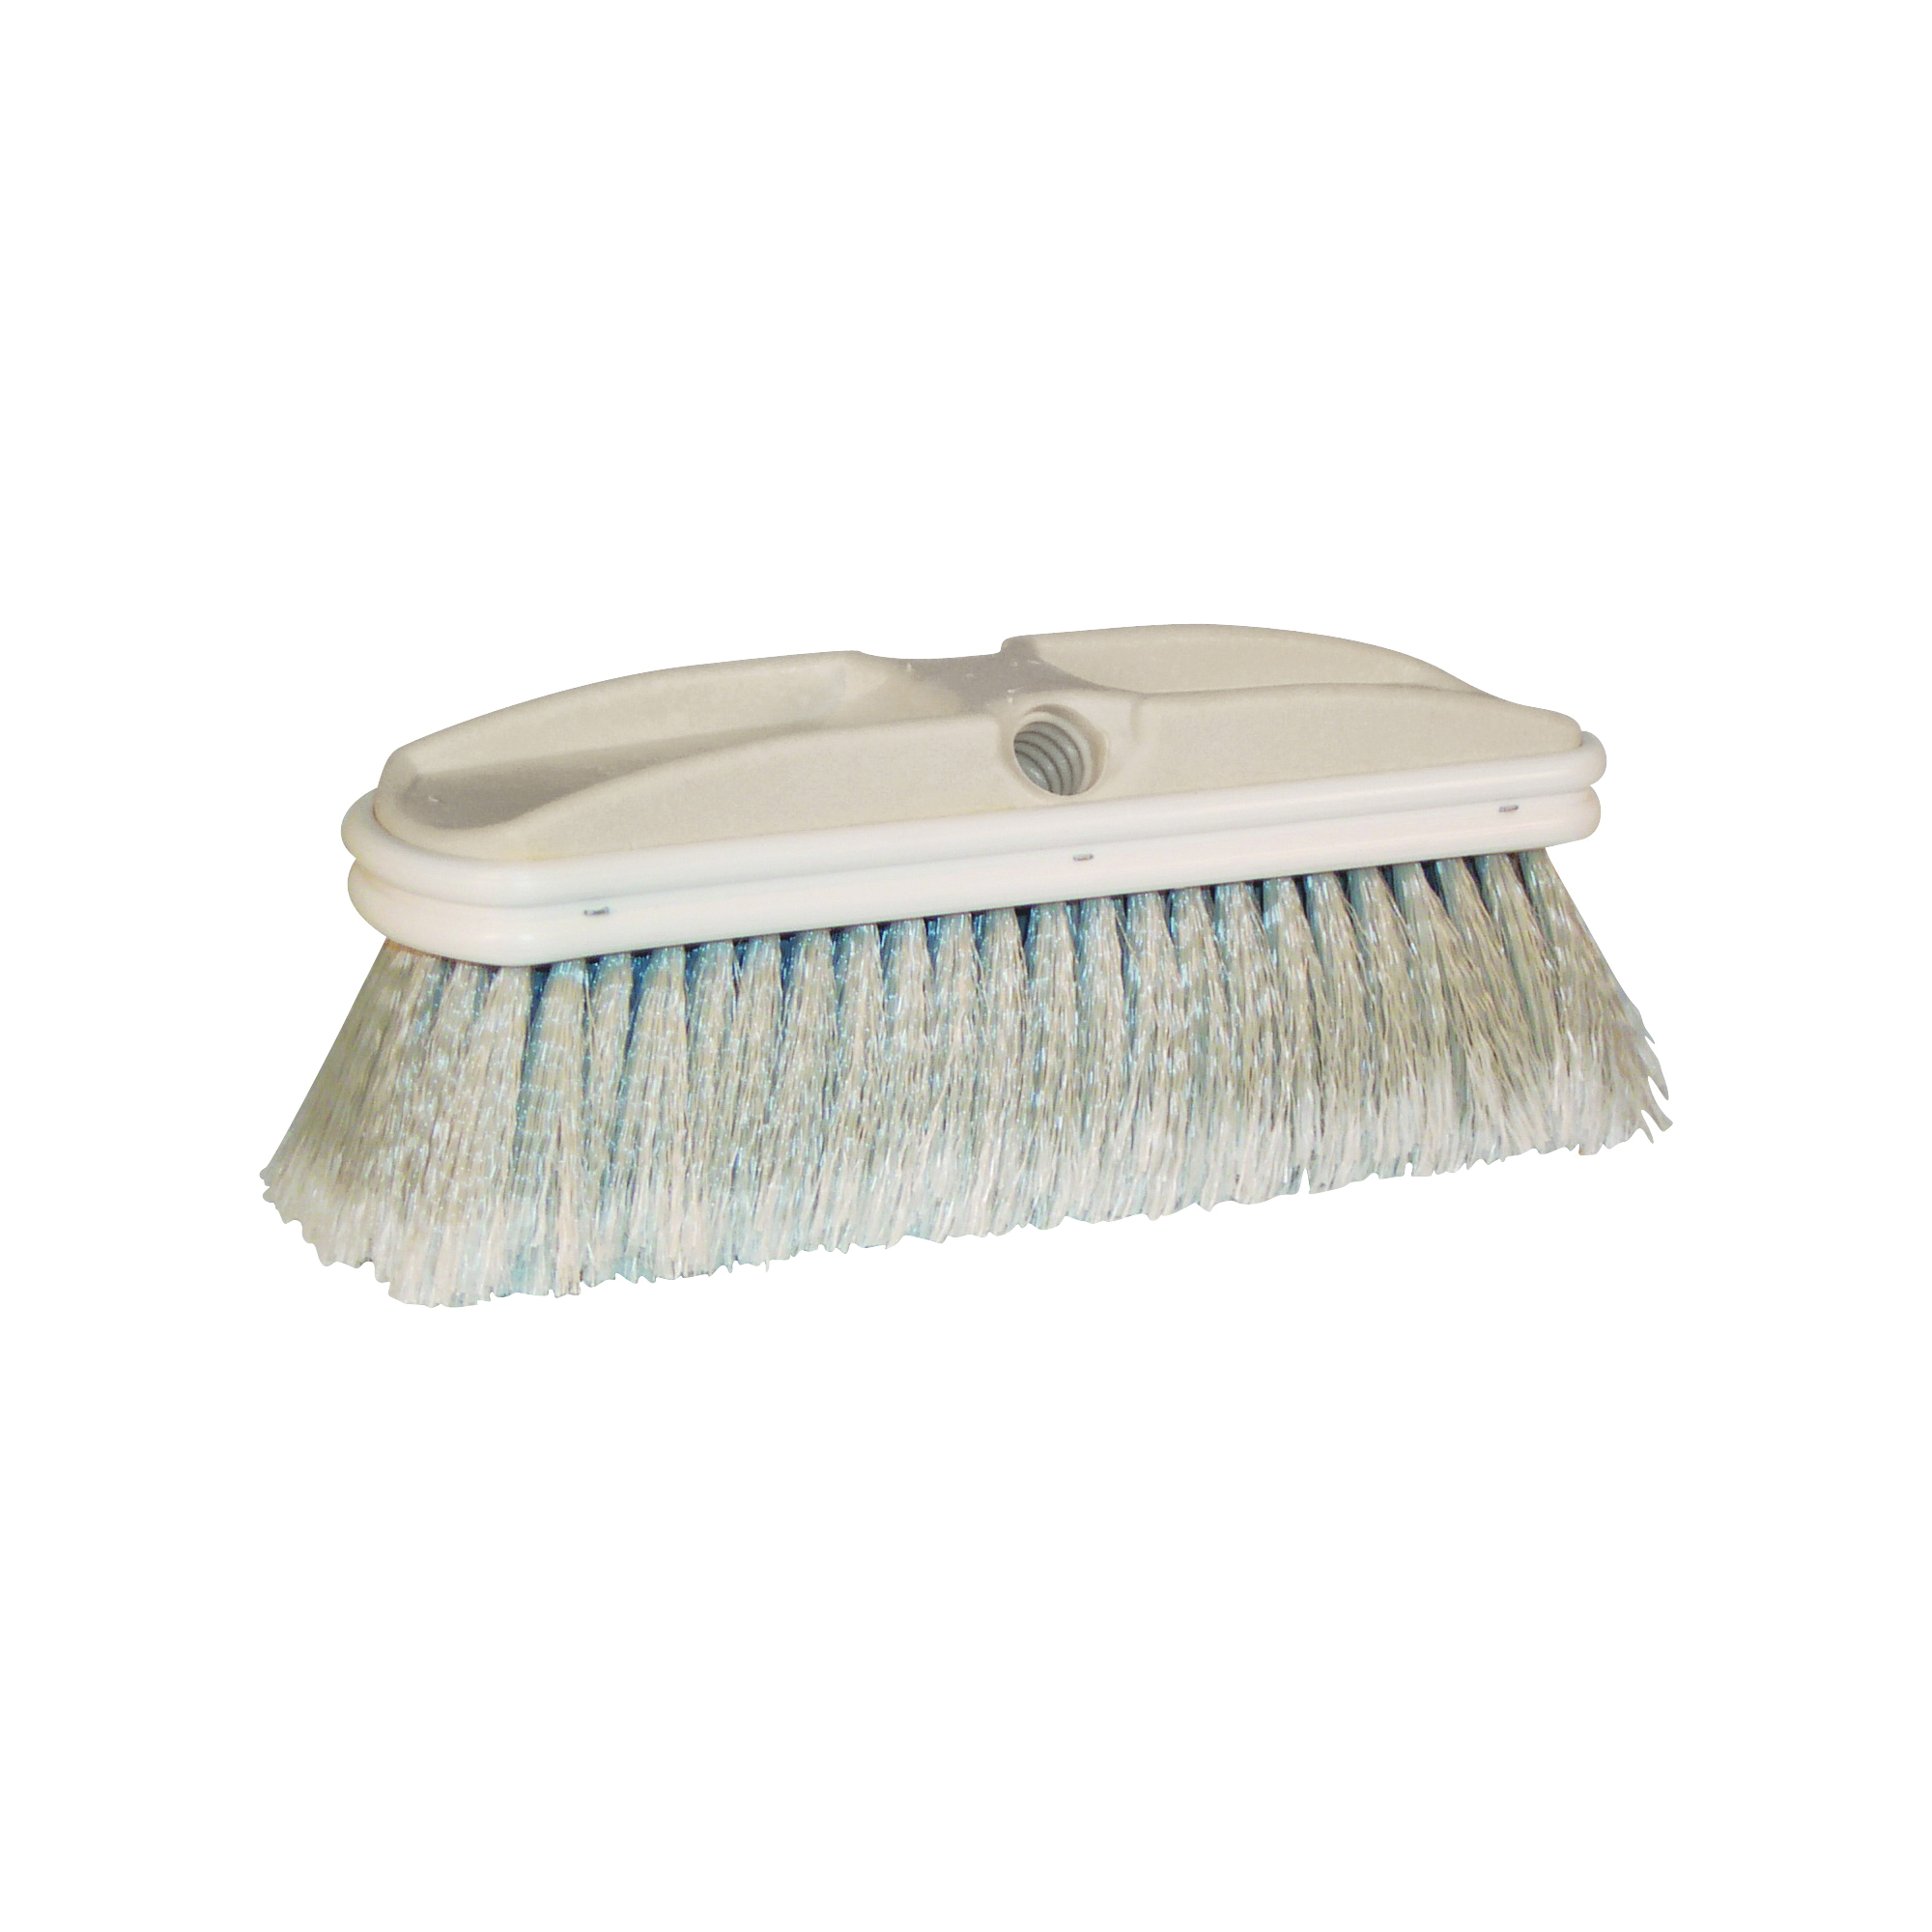 Picture of DQB 11713 Washing Brush, 2-1/2 in L Trim, 9 in OAL, Synthetic Trim, Poly Handle